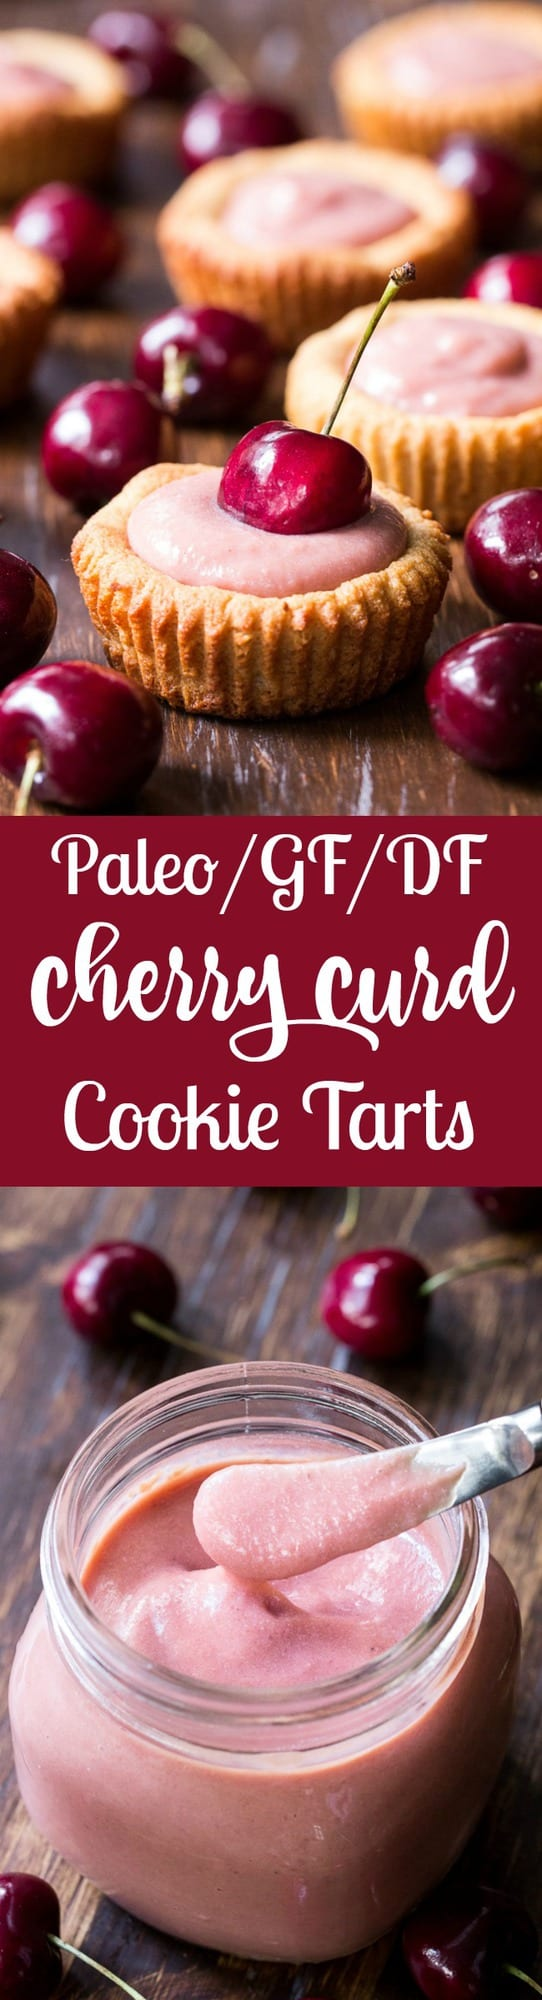 Thick, creamy and sweet cherry curd made from fresh cherries is spooned into grain free and paleo cookie tarts for a delicious, fun and secretly healthy dessert!   Dairy free, refined sugar free, gluten-free and paleo.